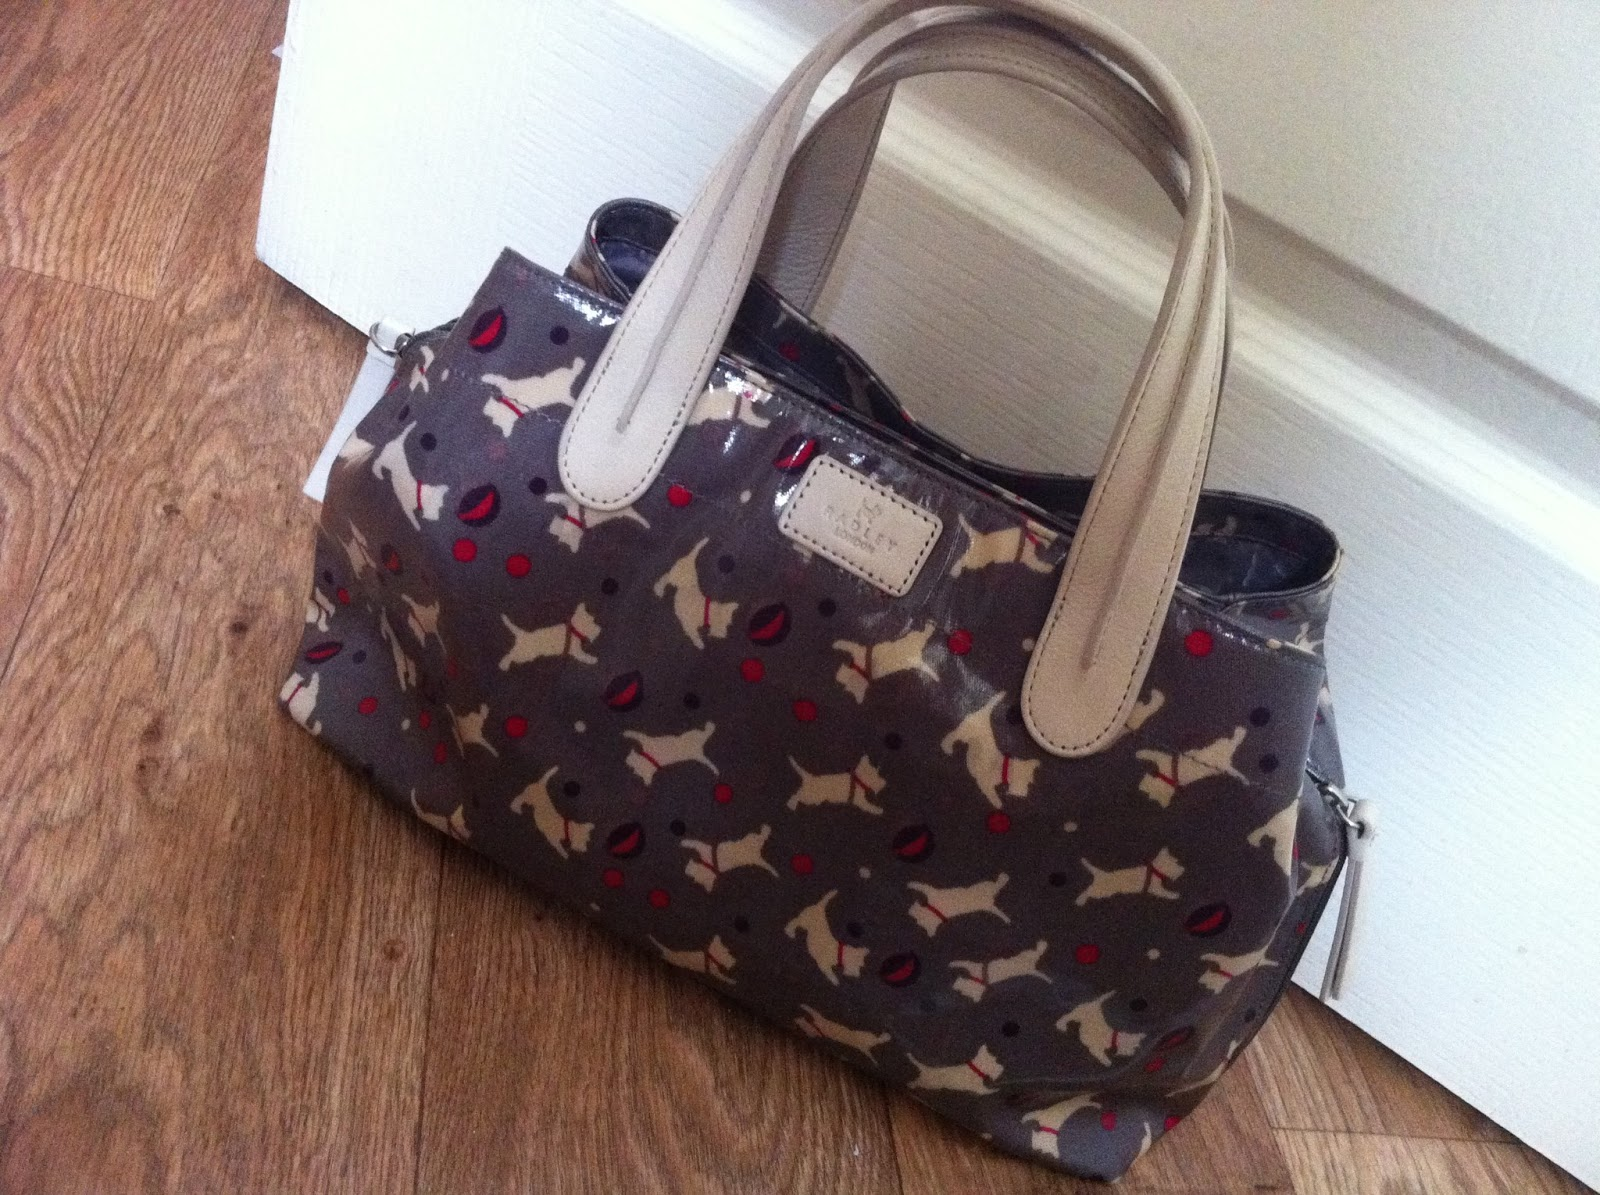 I M Starting With My Medium Circus Dog Canvas Tote Bag Pictured Above